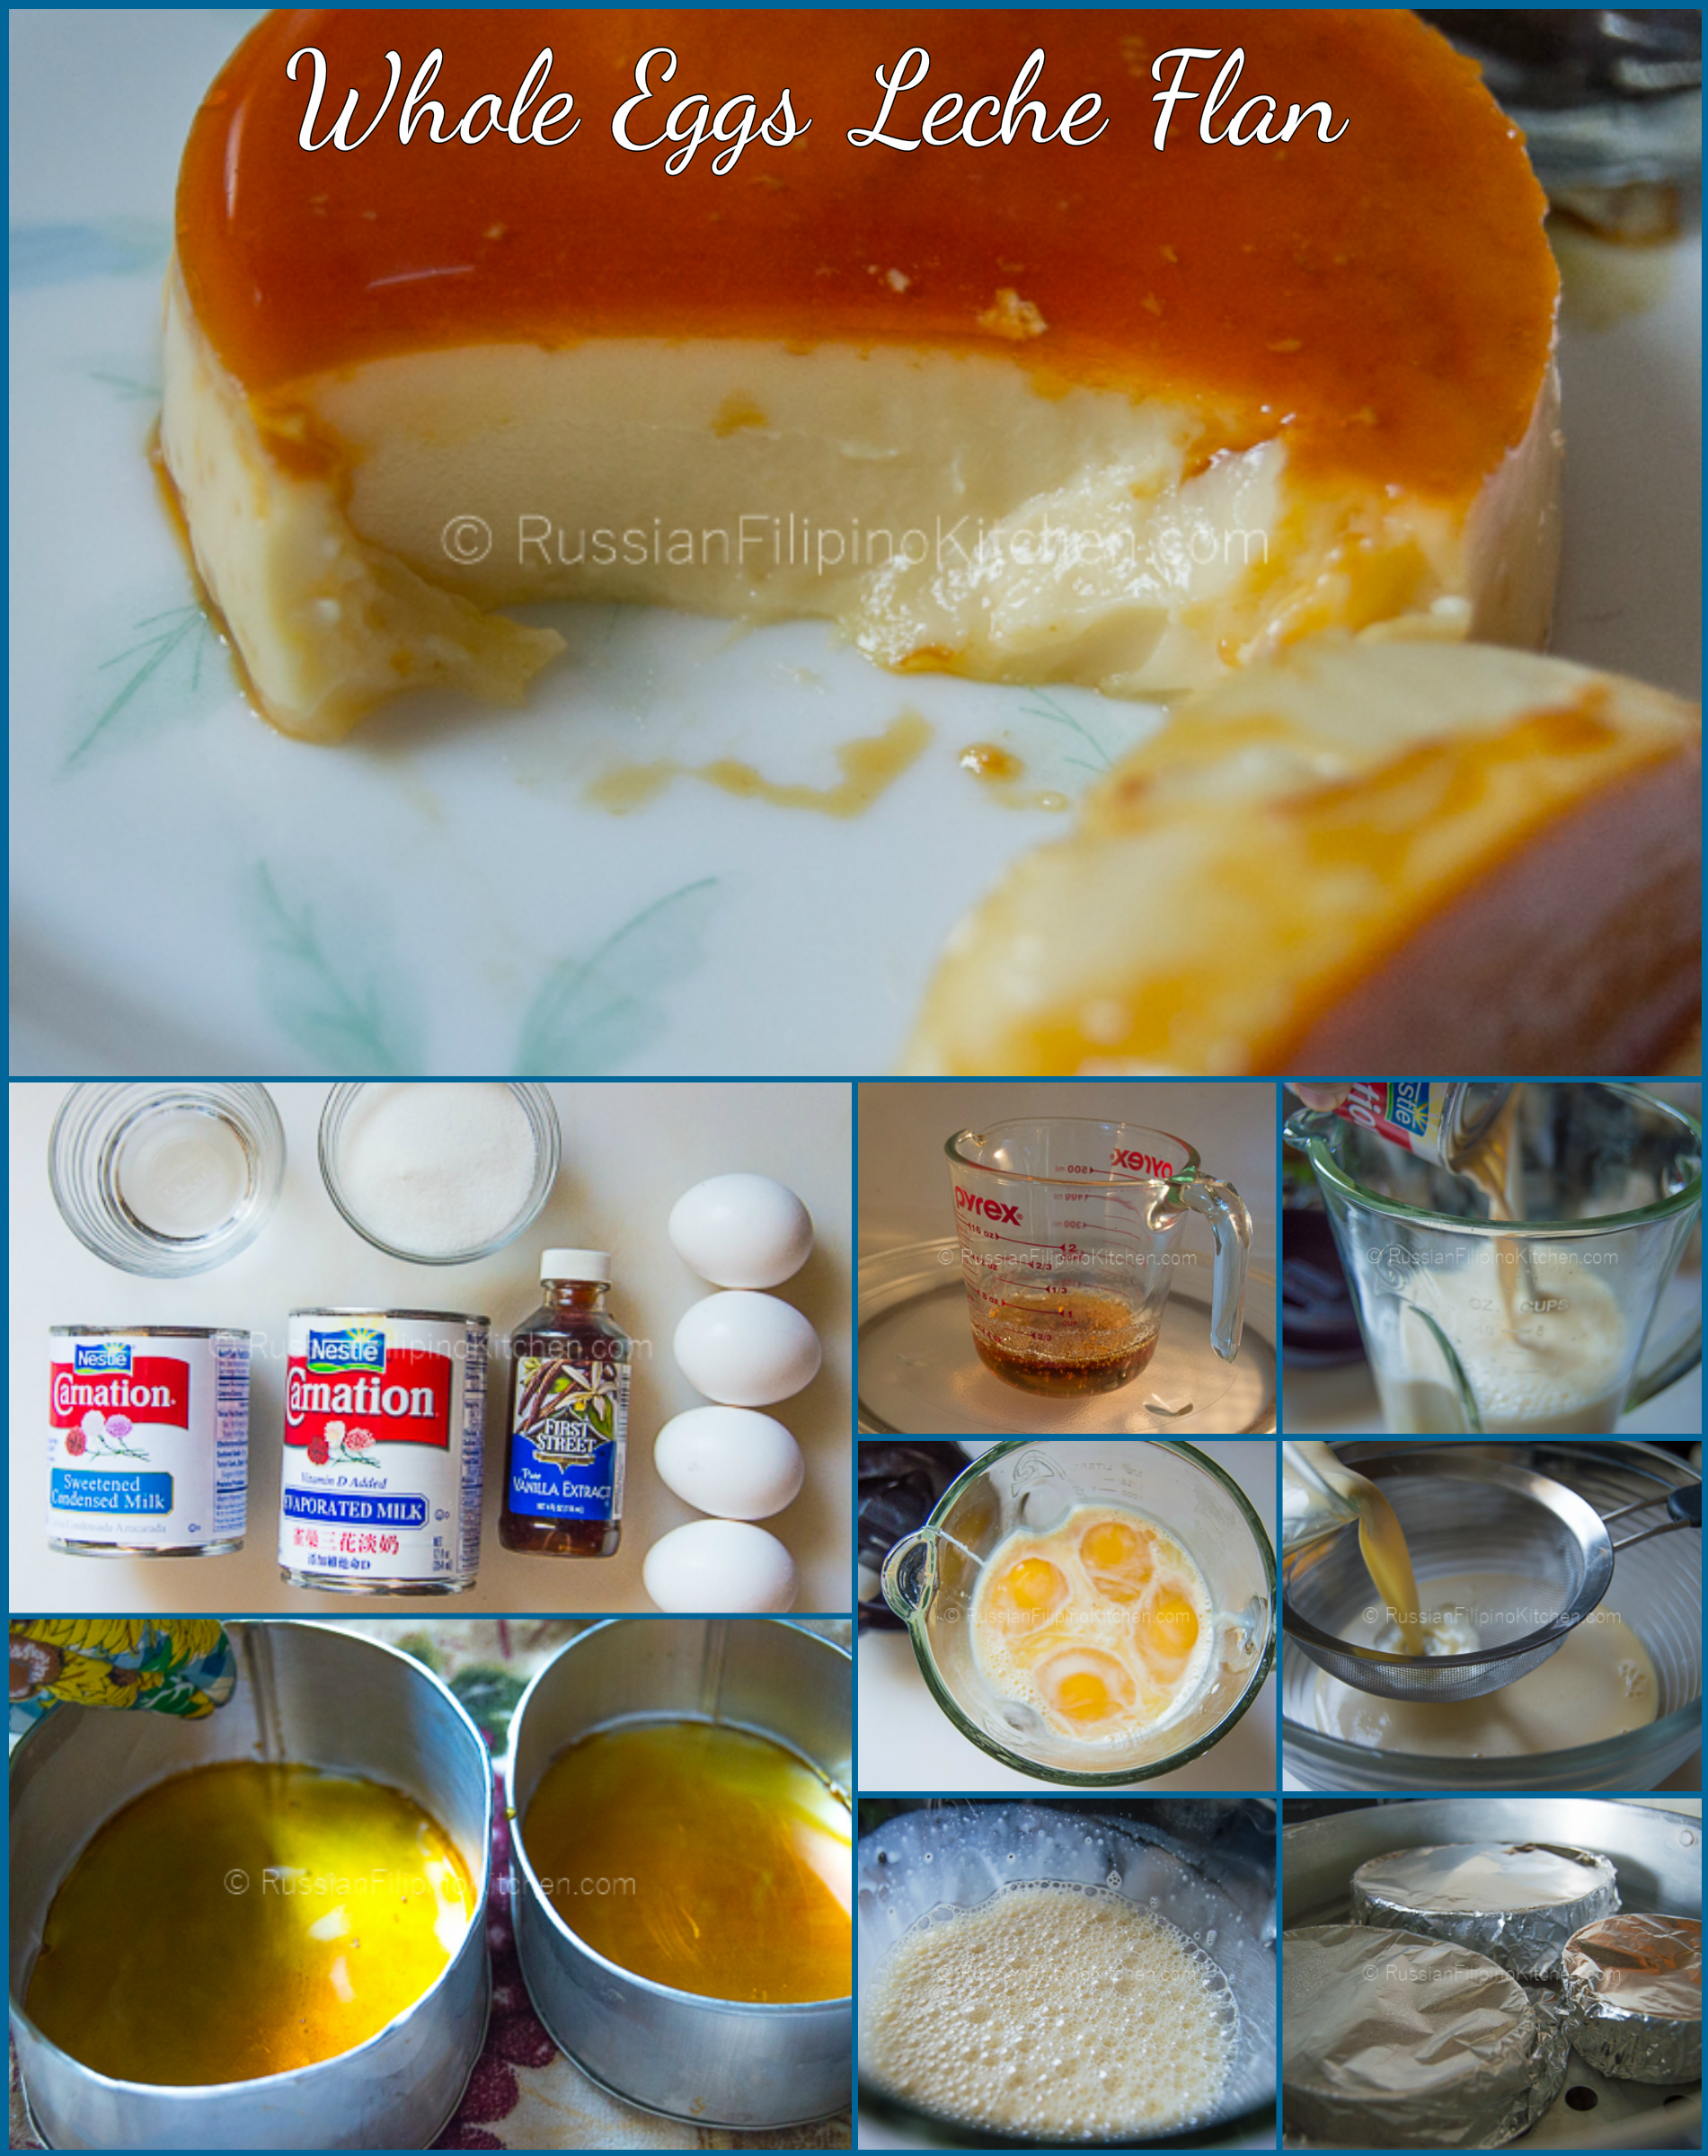 Learn to make Filipino style leche flan using whole eggs. The result is a rich, smooth, and ...